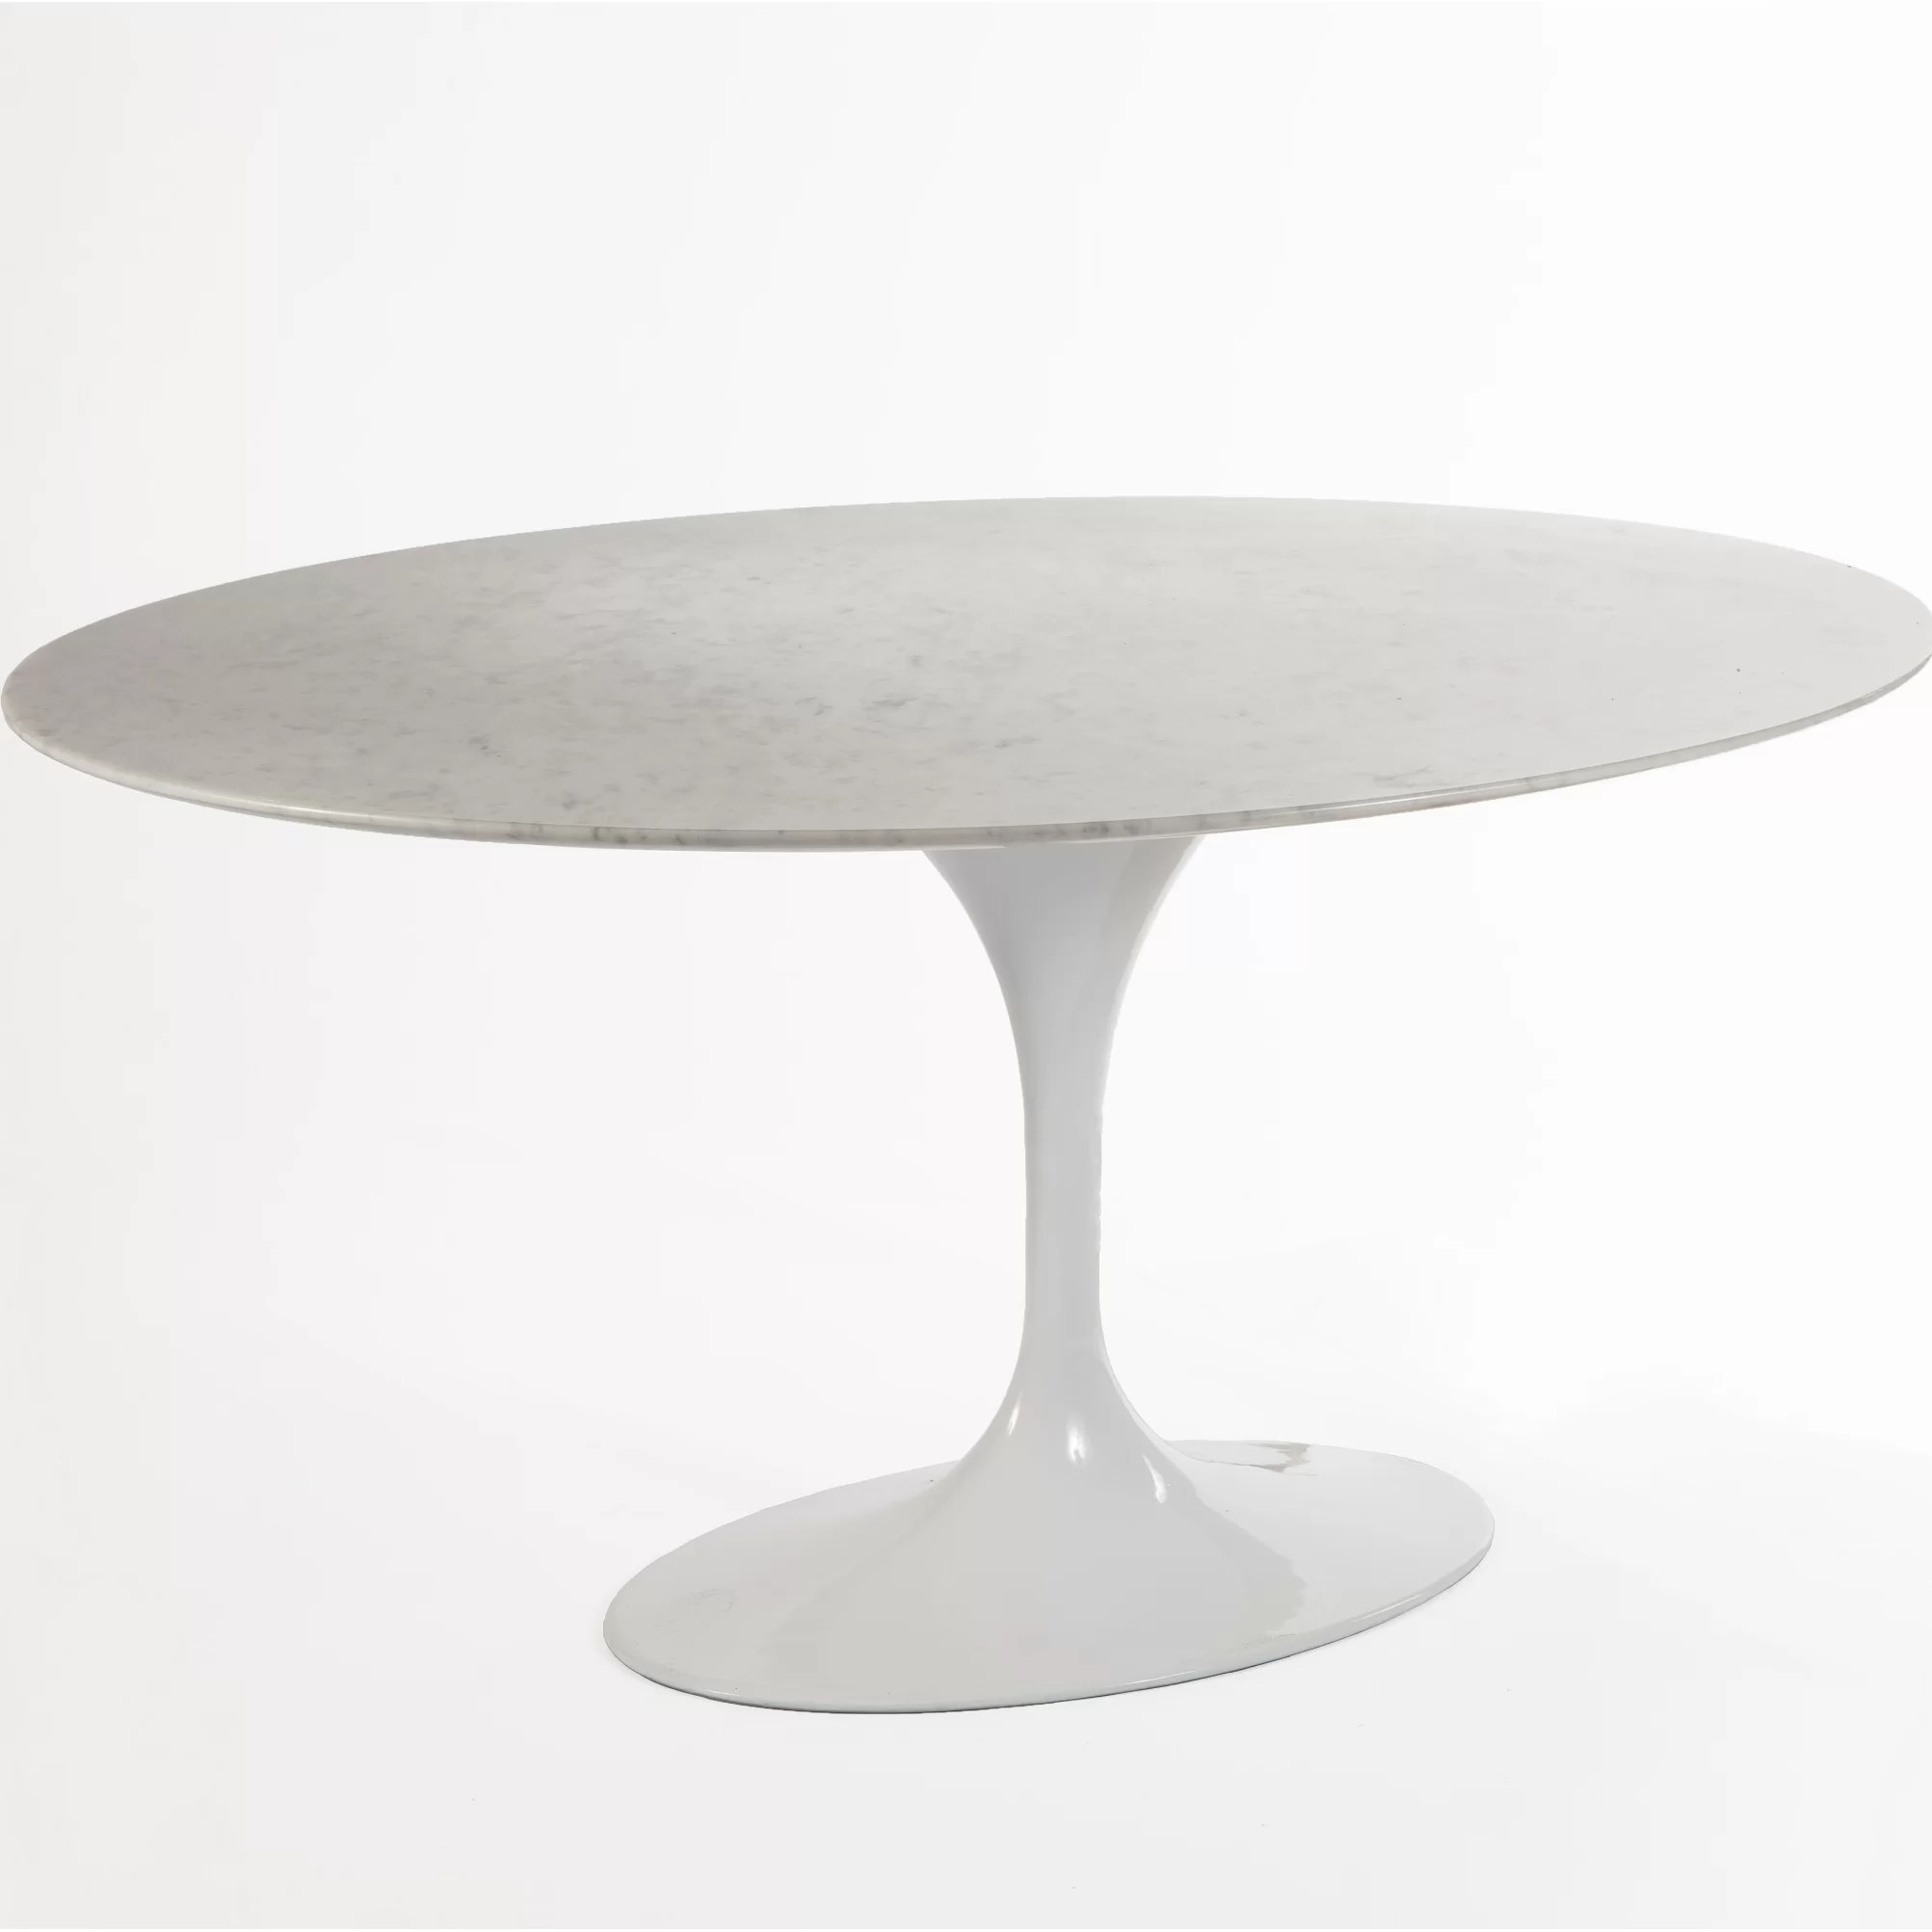 Tulip Table Stilnovo Tulip Dining Table | Wayfair.ca